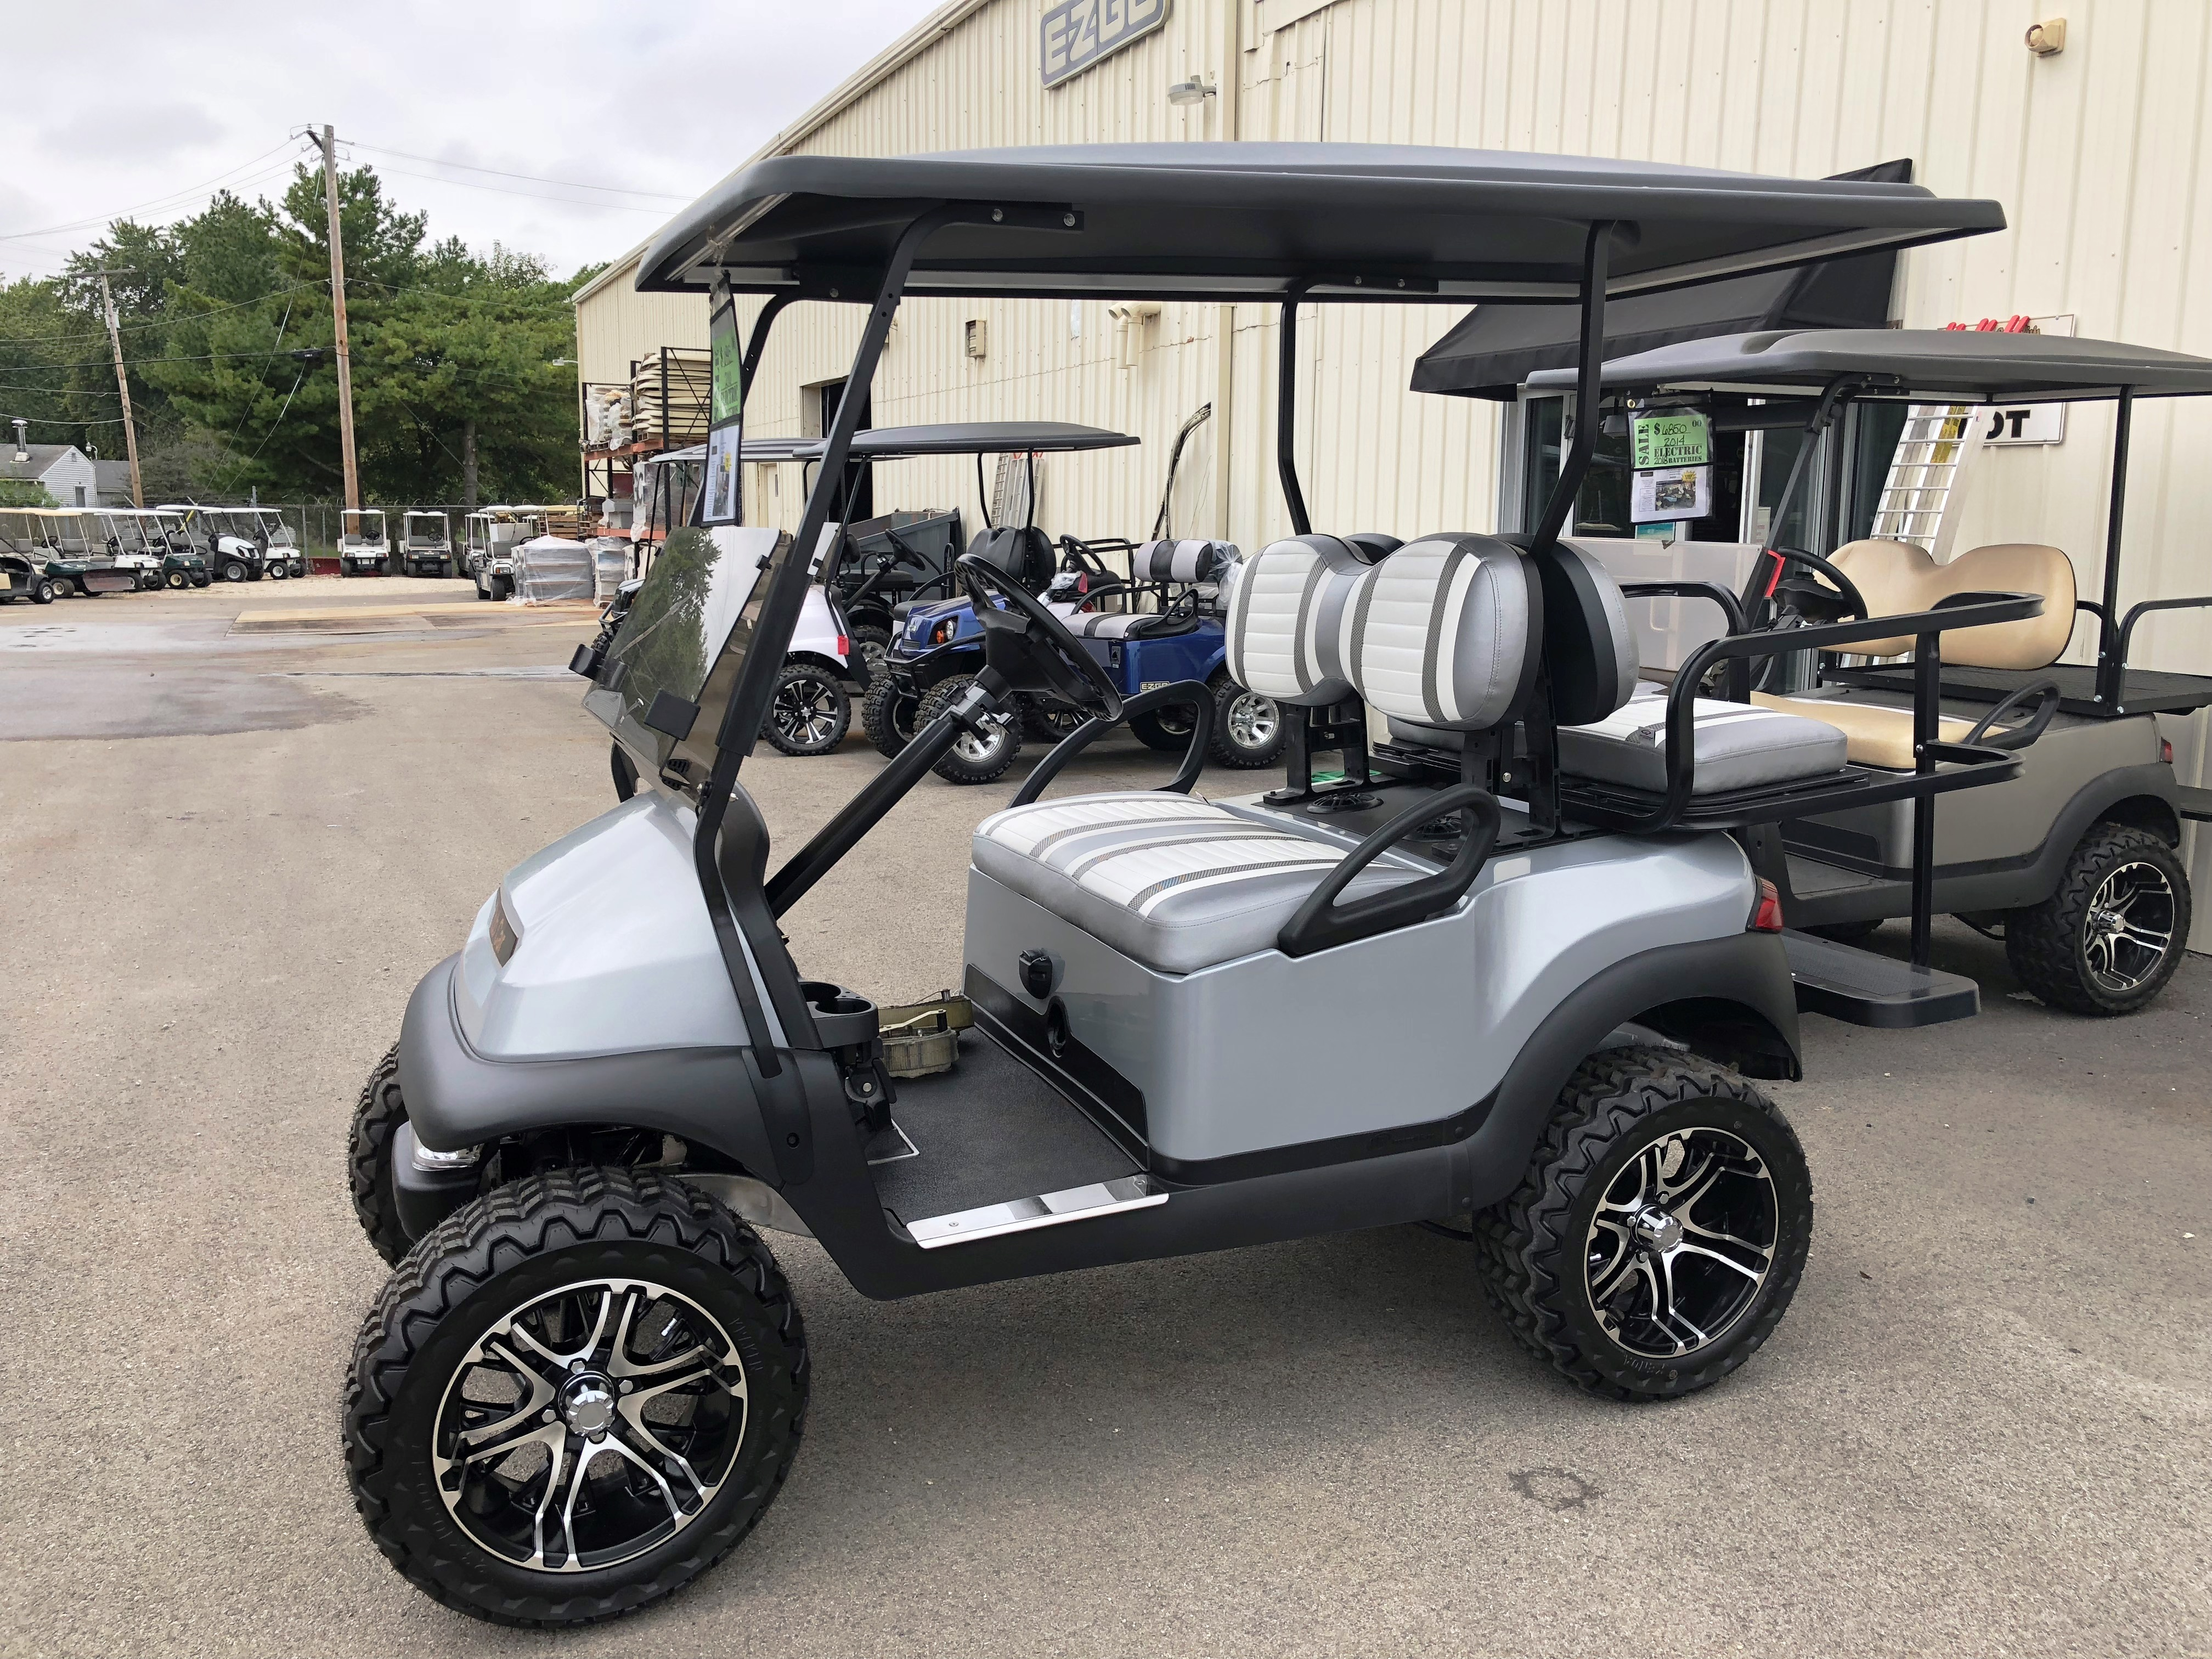 2010 Club Car Precedent ELECTRIC Golf Cart Platinum Red $6995